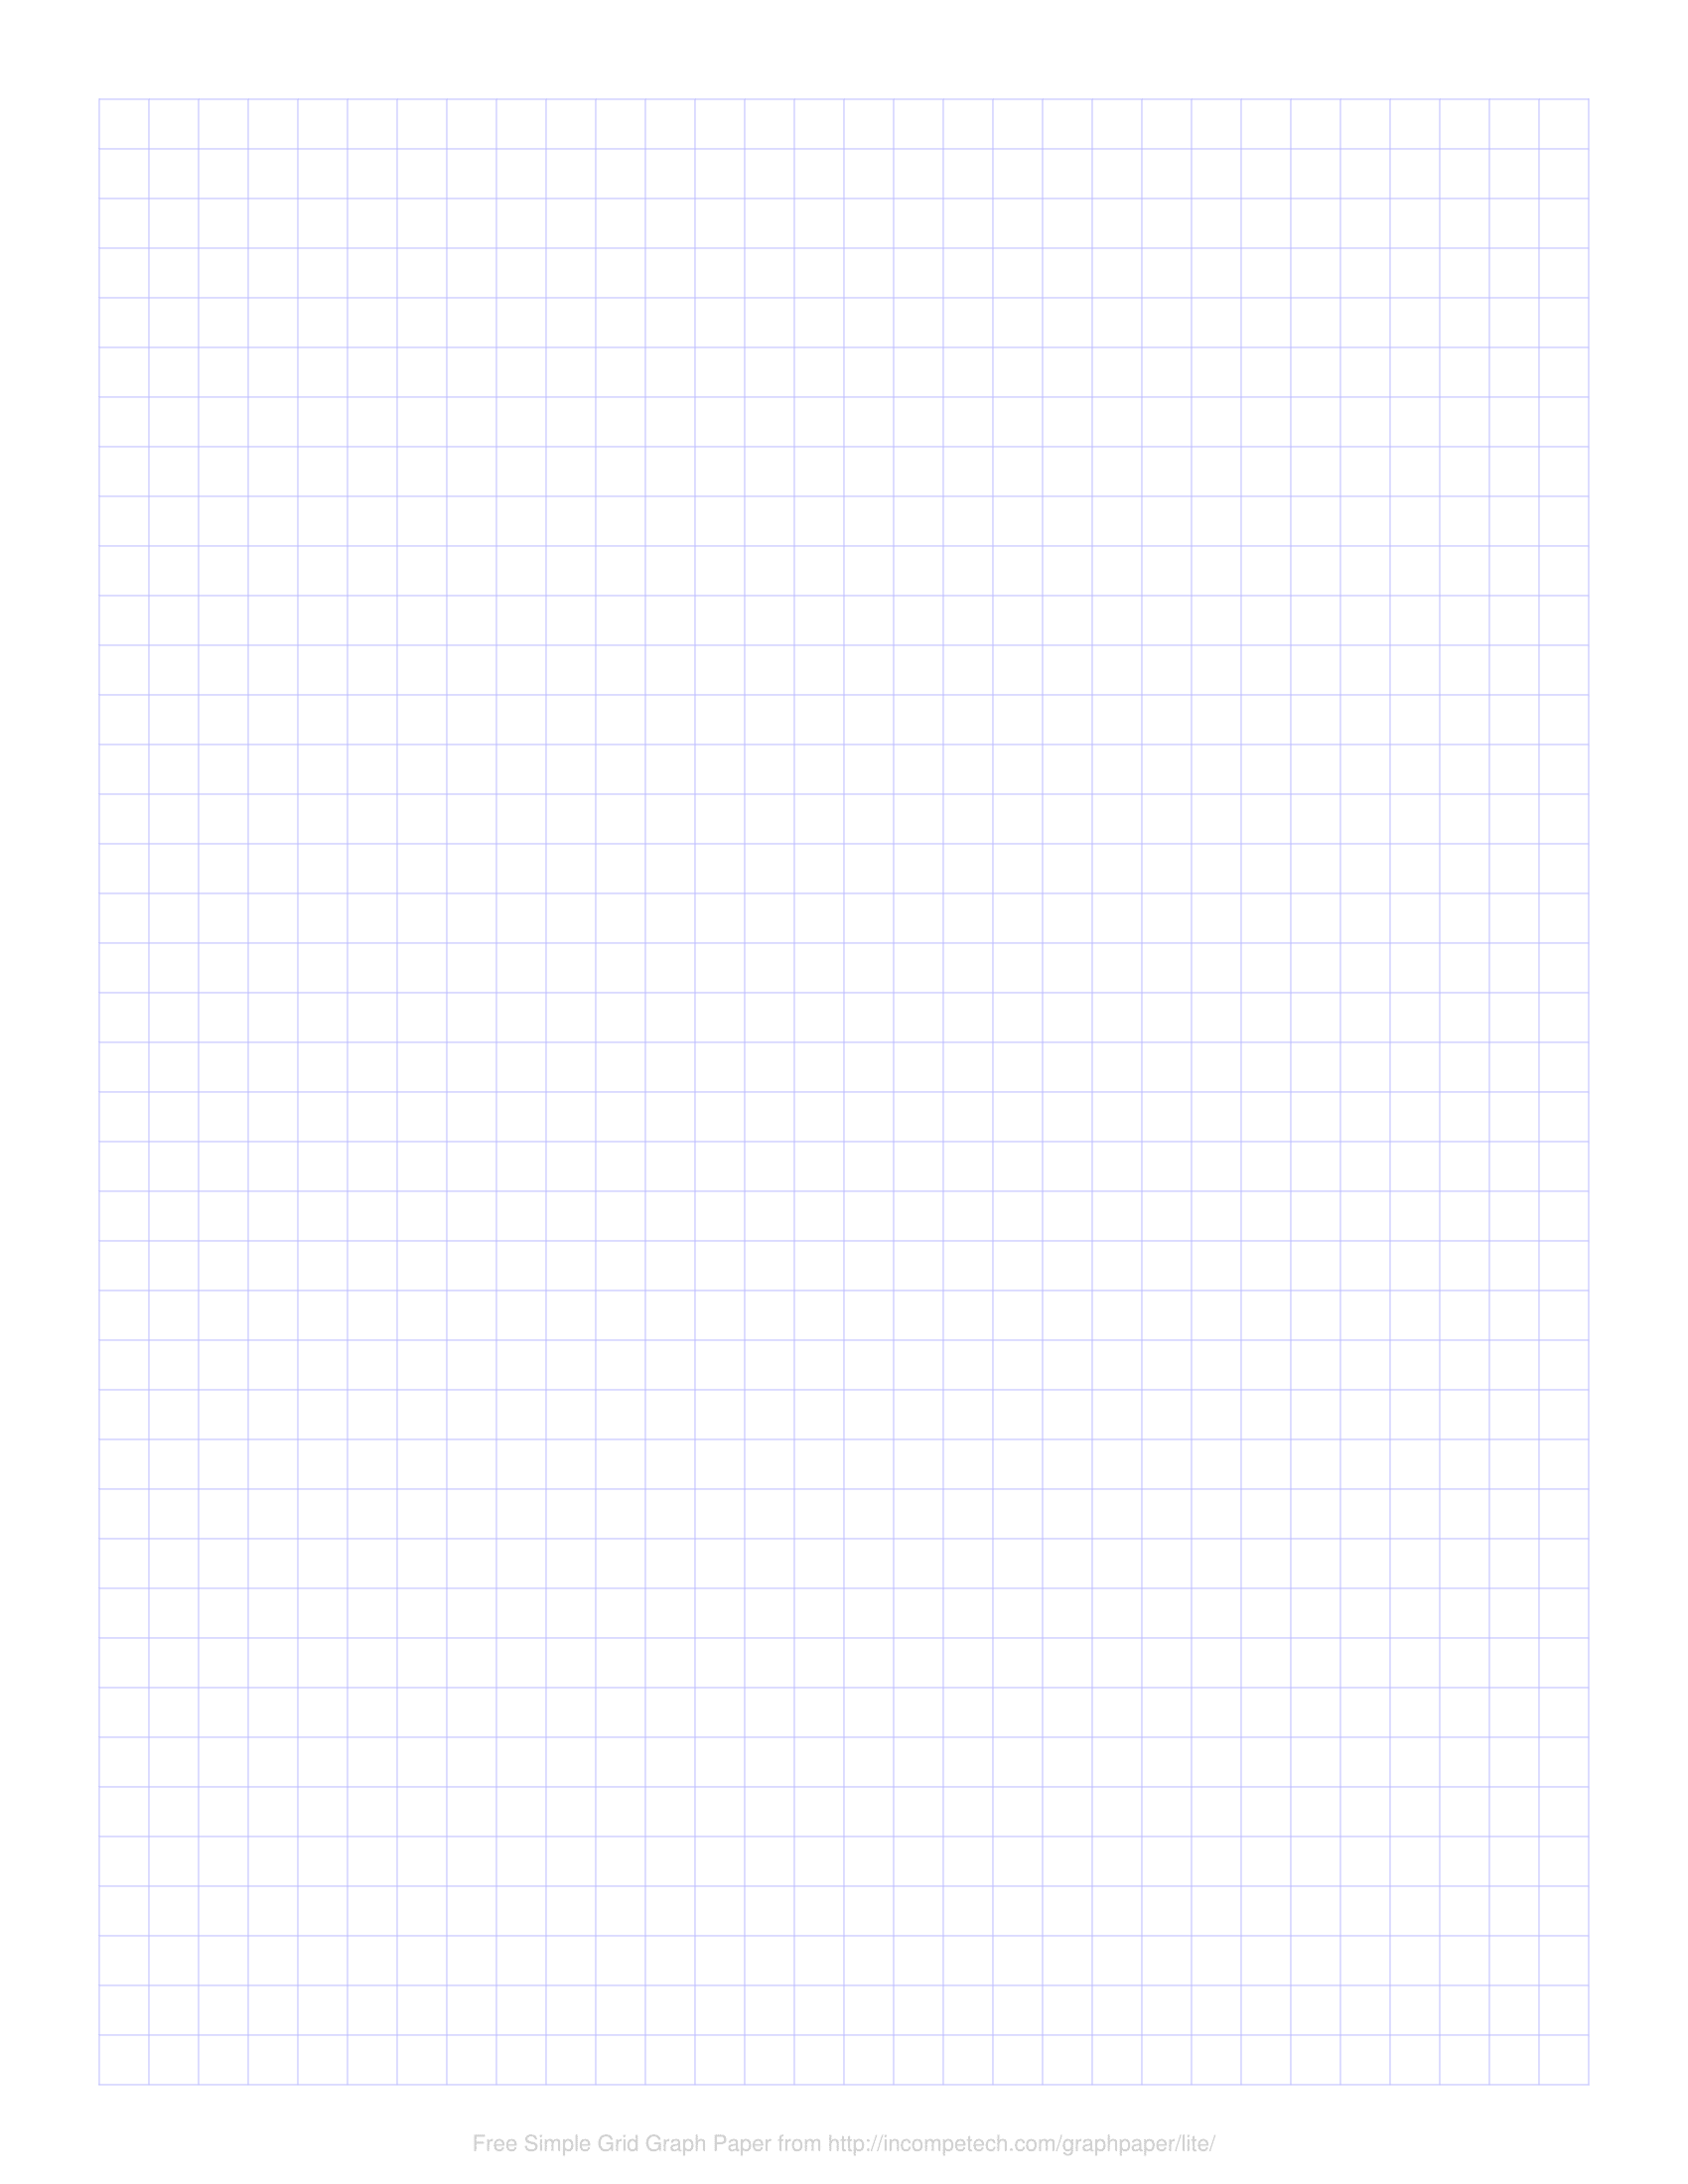 Free Online Graph Paper Simple Grid In